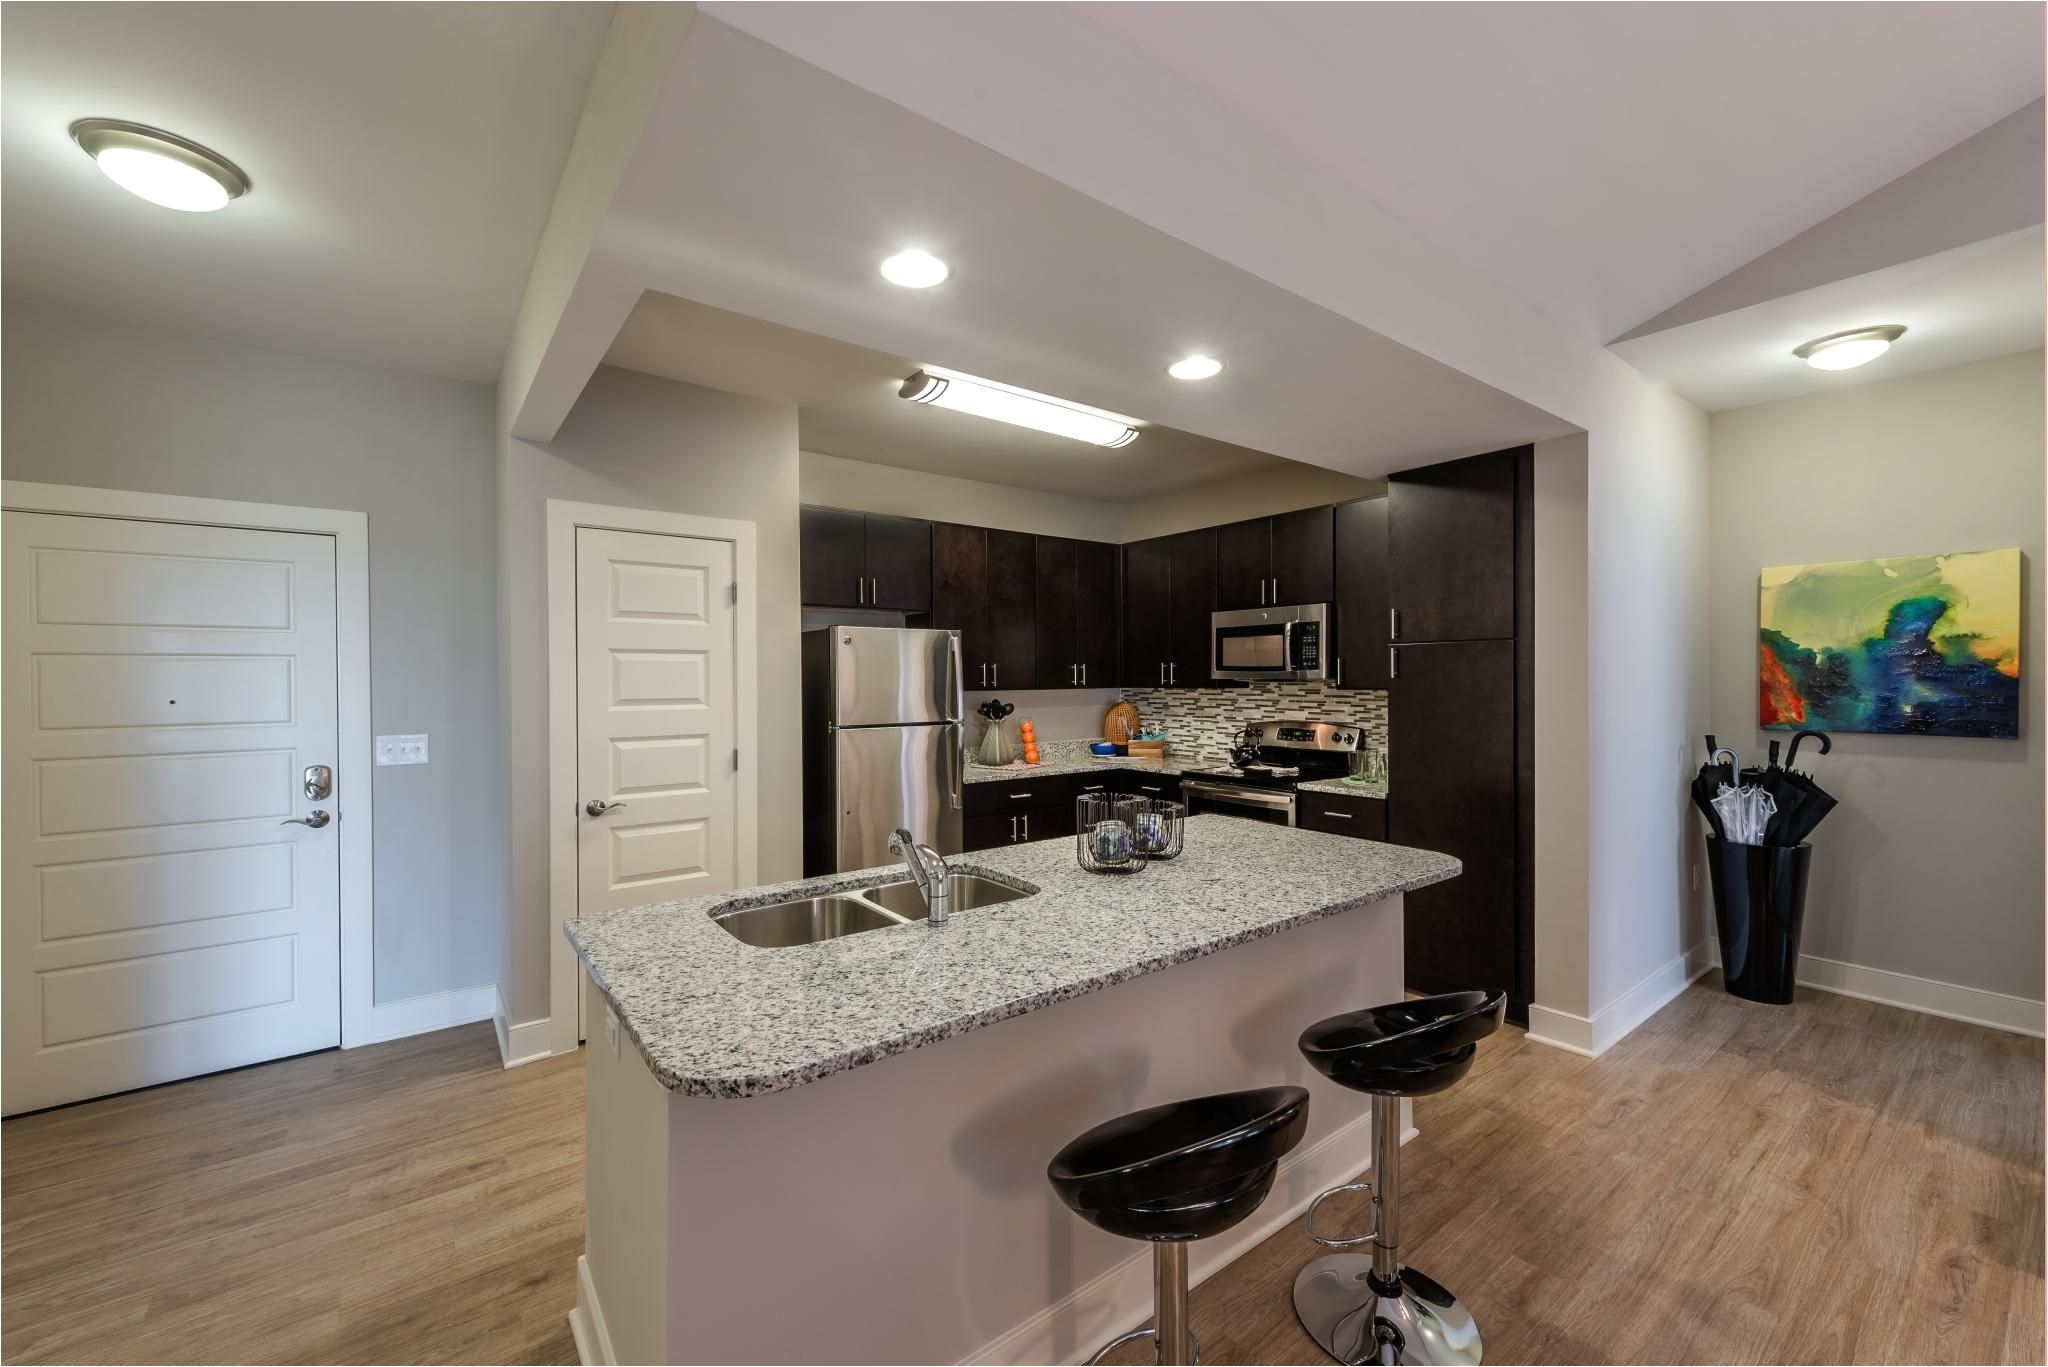 1 Bedroom Apartments For Rent In Virginia Beach One Bedroom Apartment 1 Bedroom Apartment Apartments For Rent